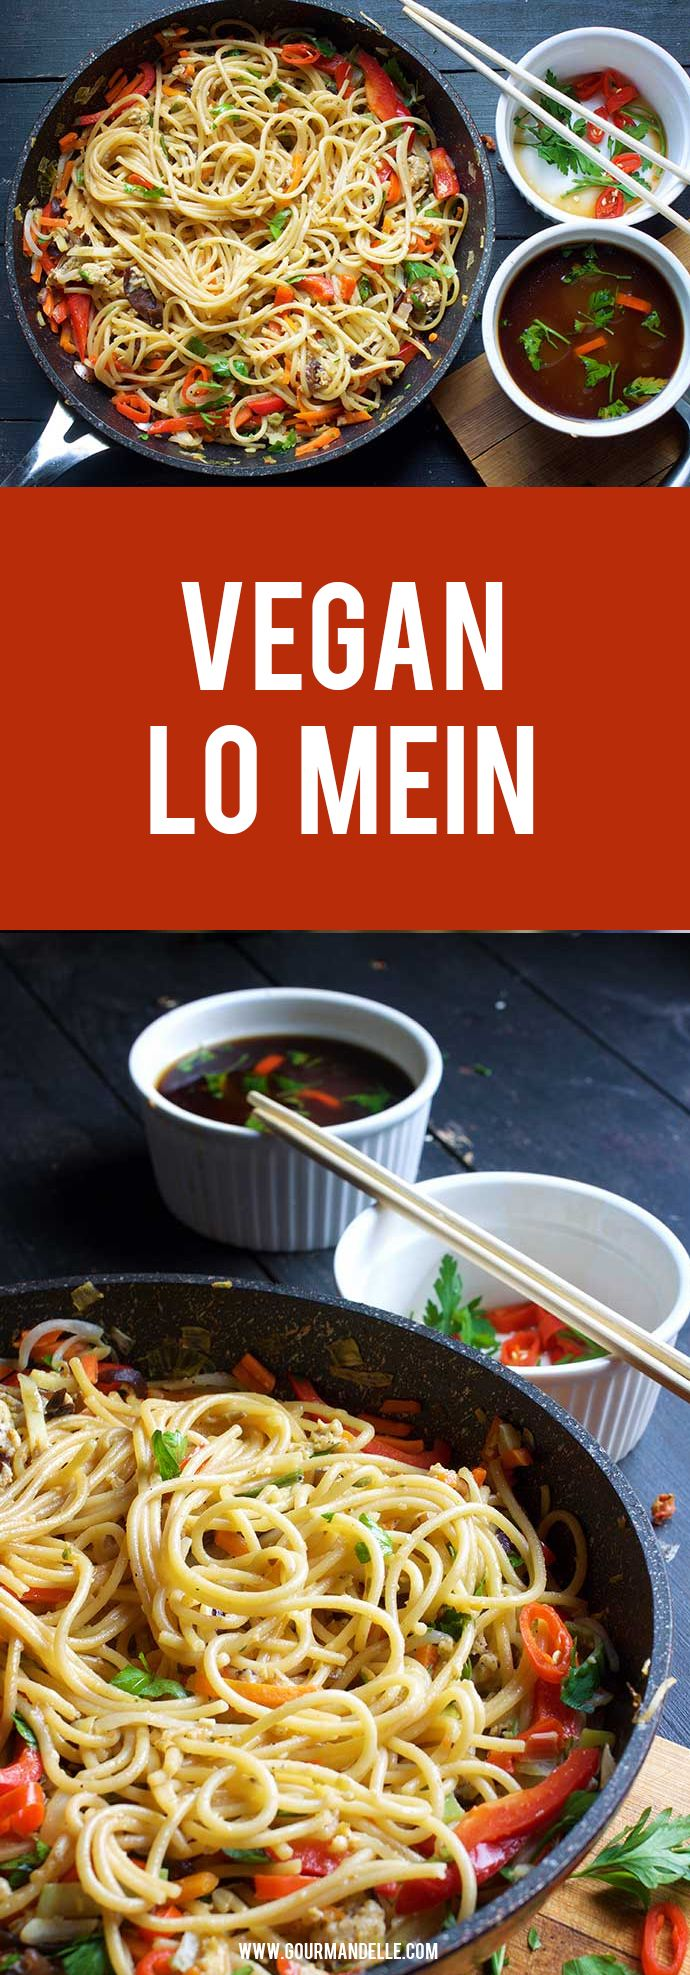 Make this vegan lo mein / vegan chow mein recipe in under 15 minutes and enjoy a delicious, healthy and protein-packed stir-fry for lunch or dinner! #lomein #chowmein #chinese